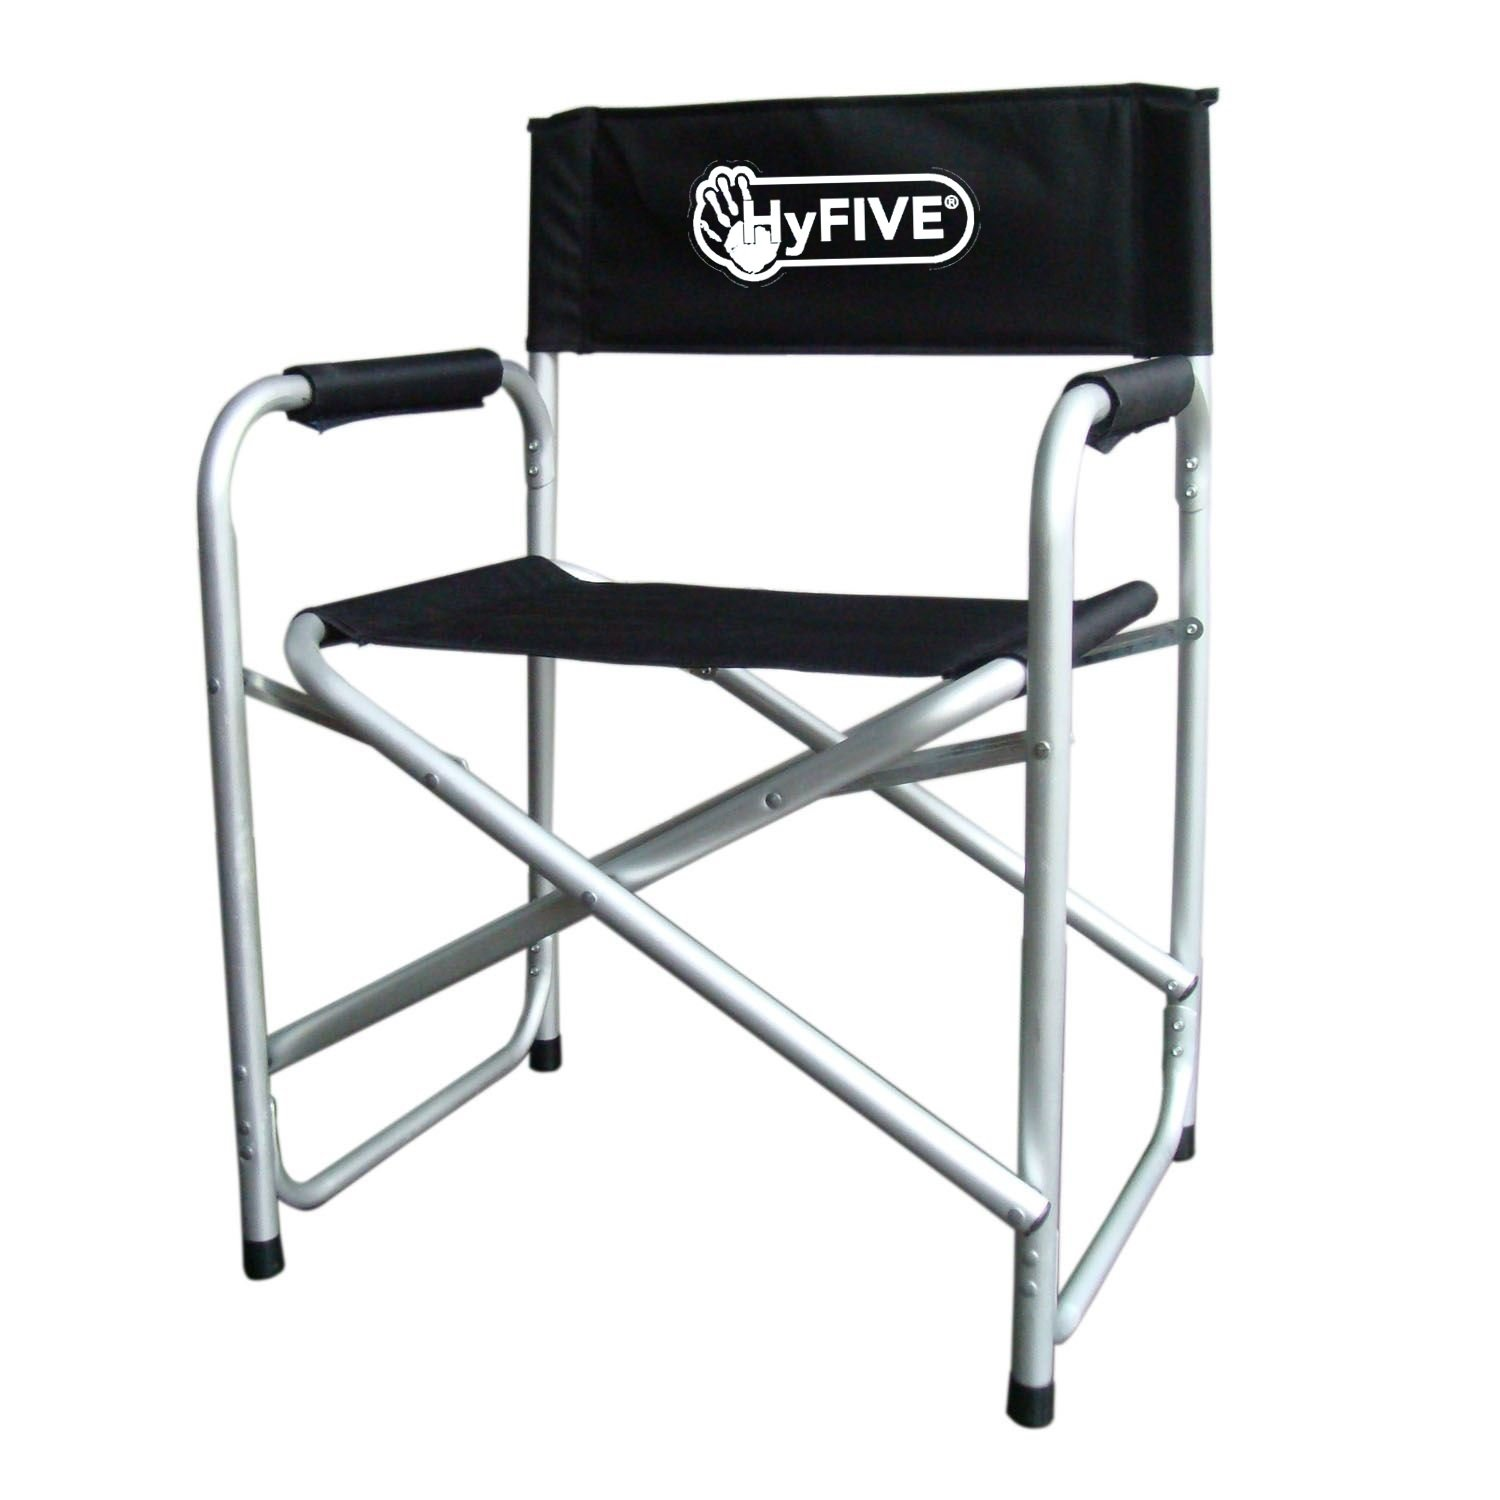 Hyfive Black Aluminium Directors Folding Chair With Arm Rest